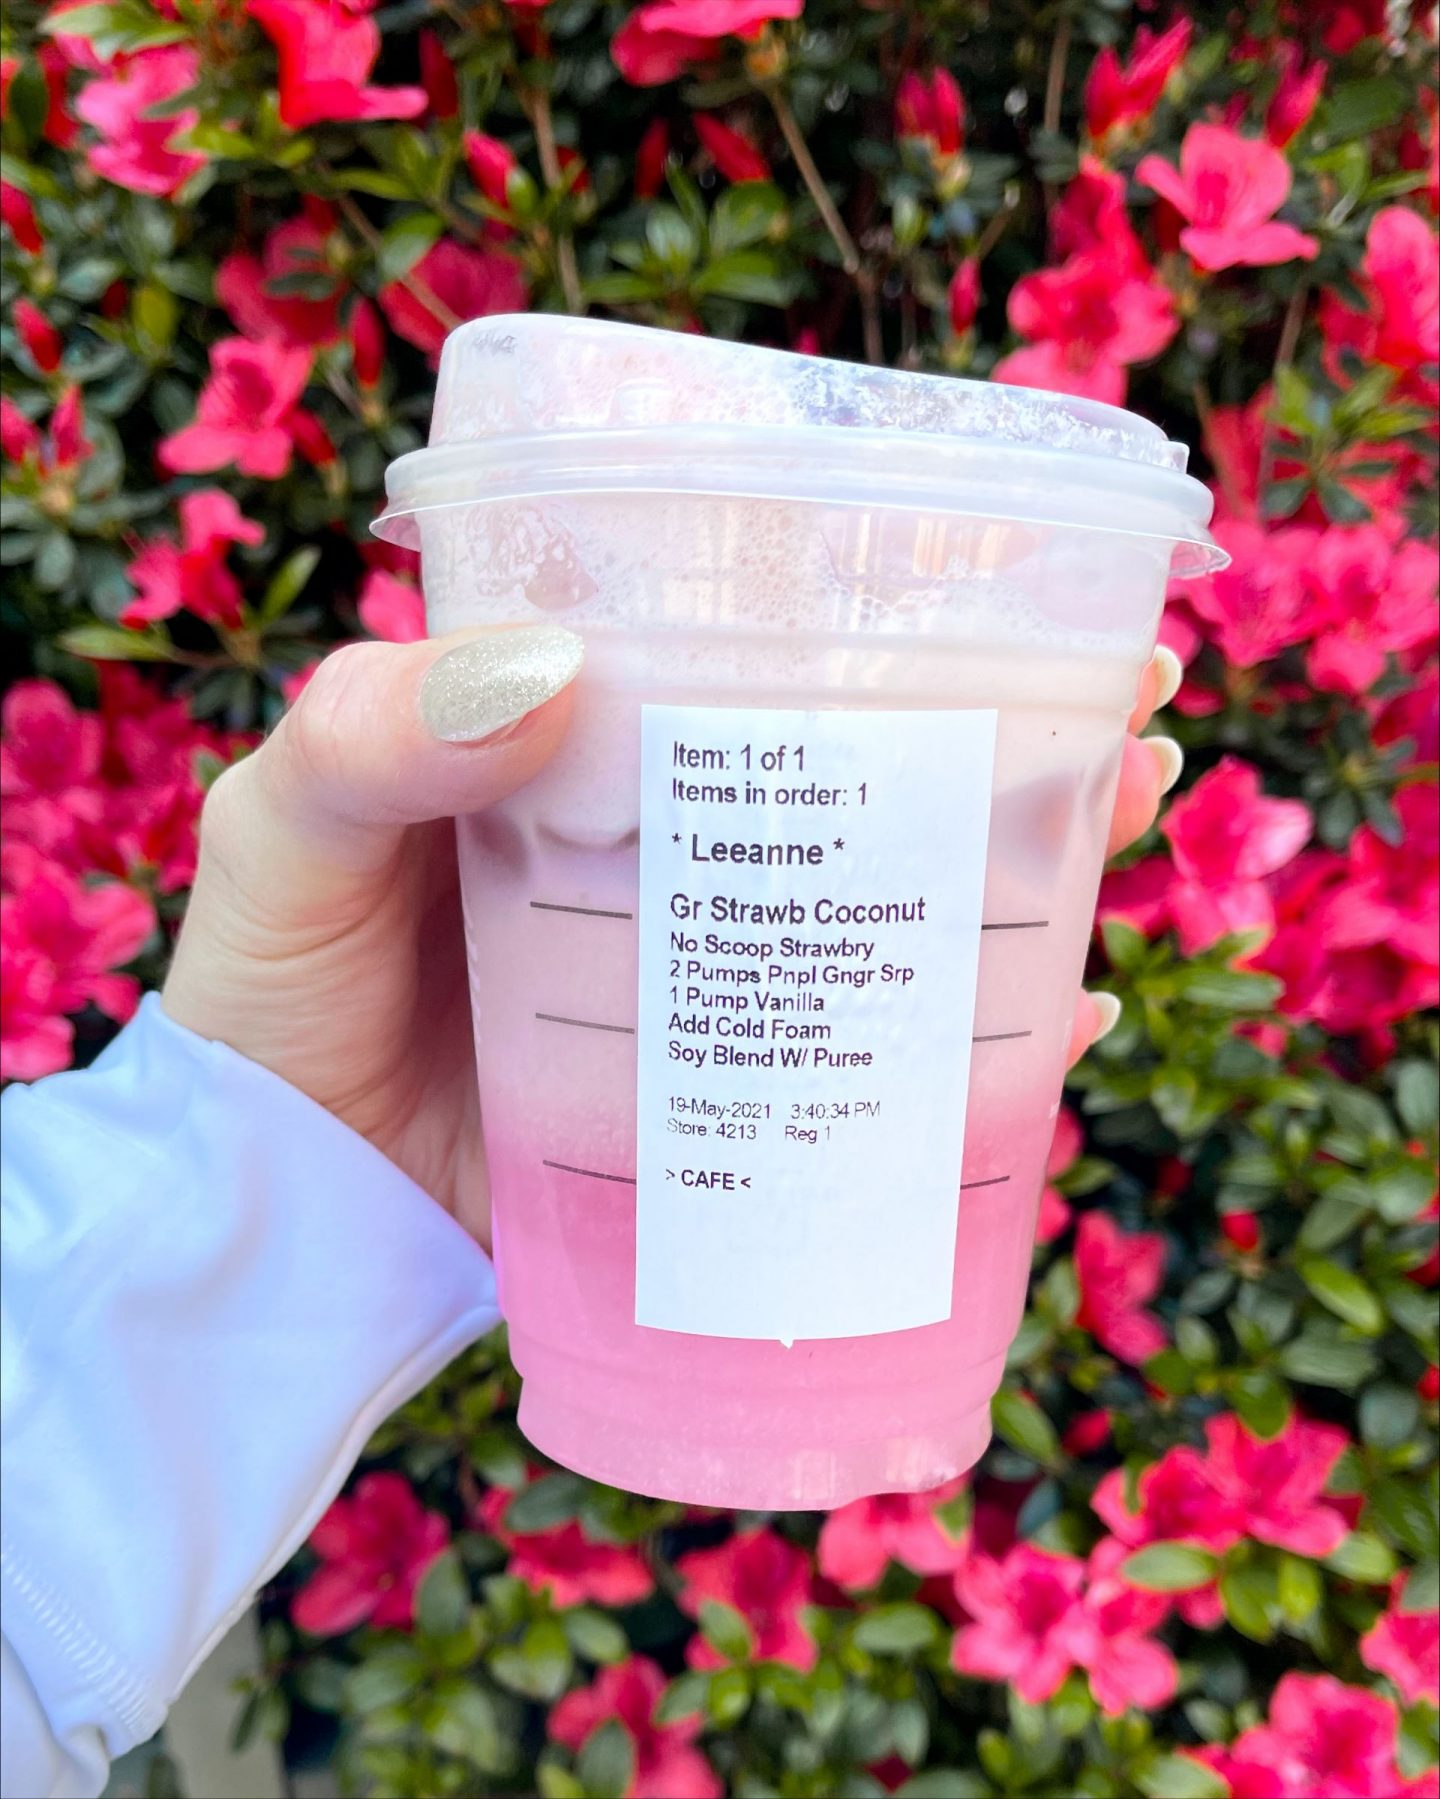 hand holding starbucks cup with a starbucks secret menu drink for summer